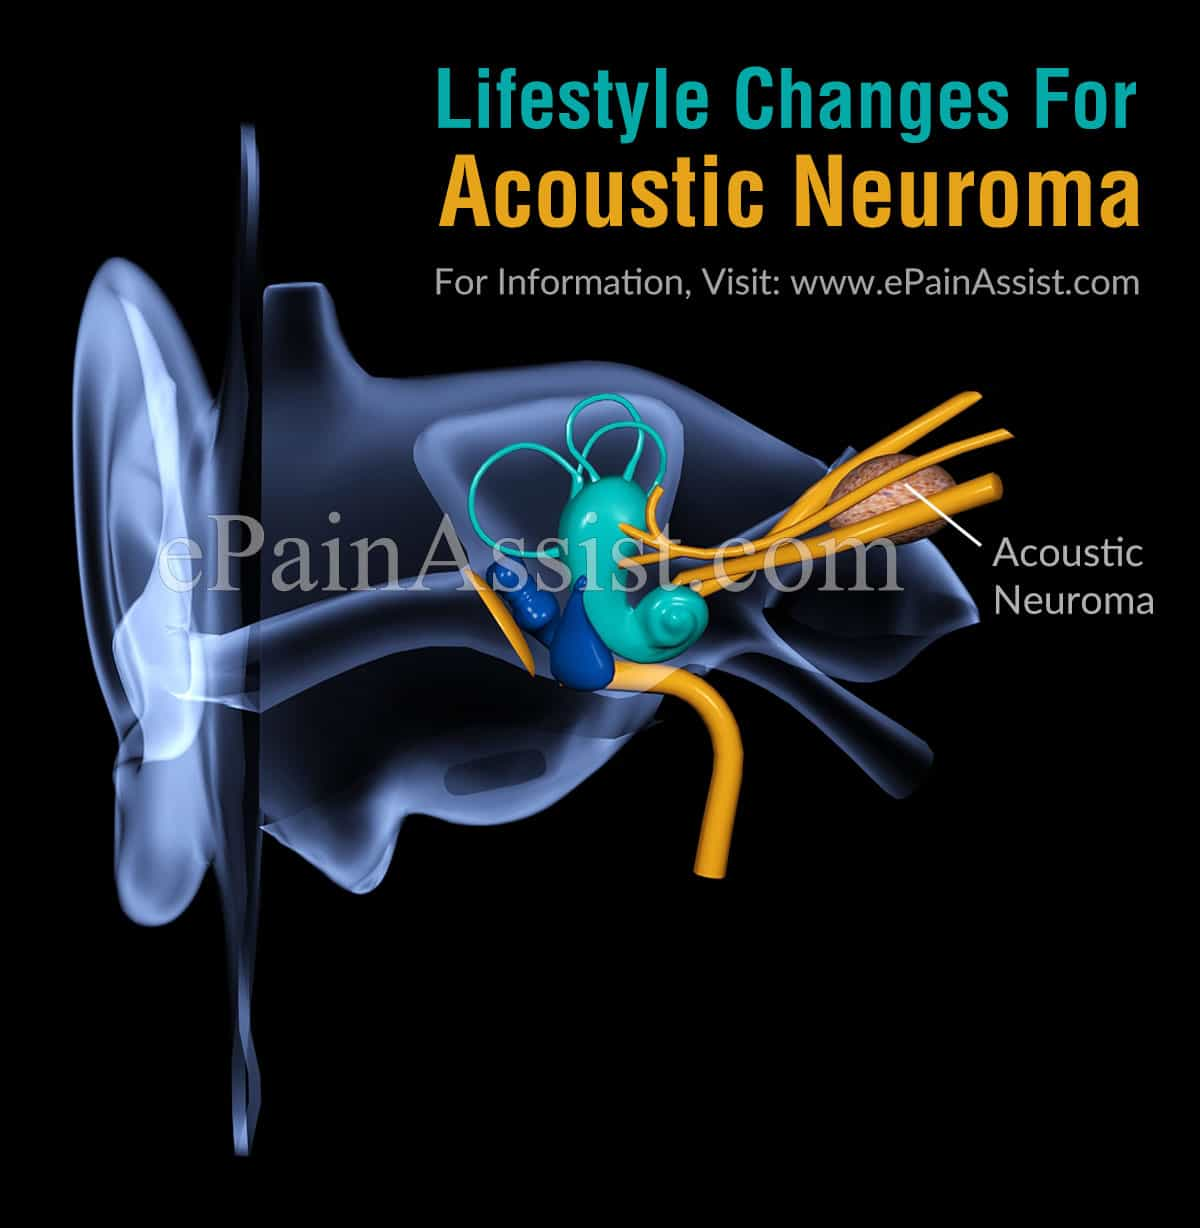 Lifestyle Changes For Acoustic Neuroma